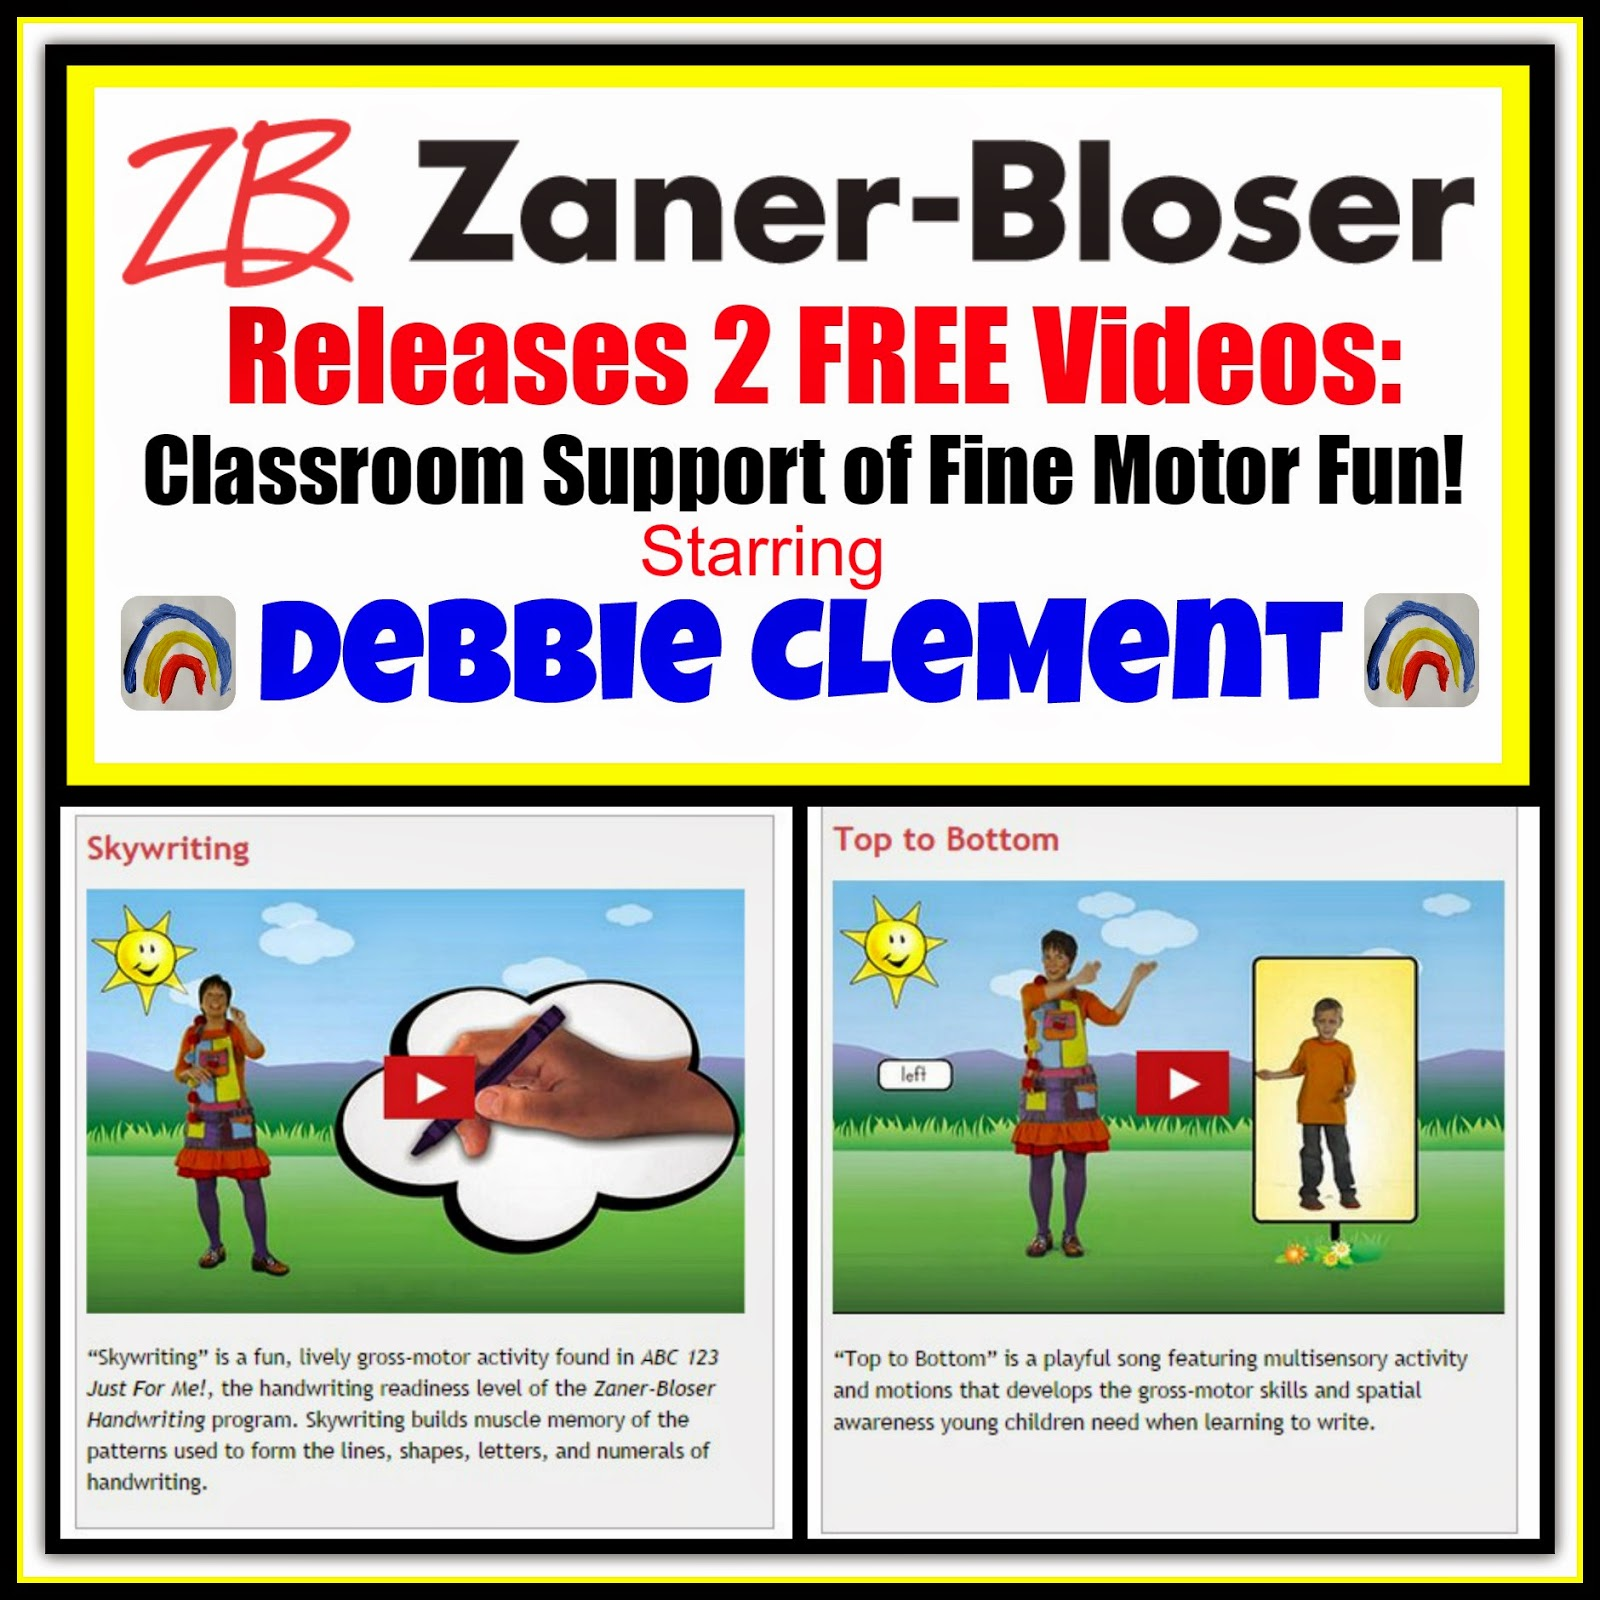 FREE Children's Song & Dance Videos by Zaner-Bloser with Debbie Clement